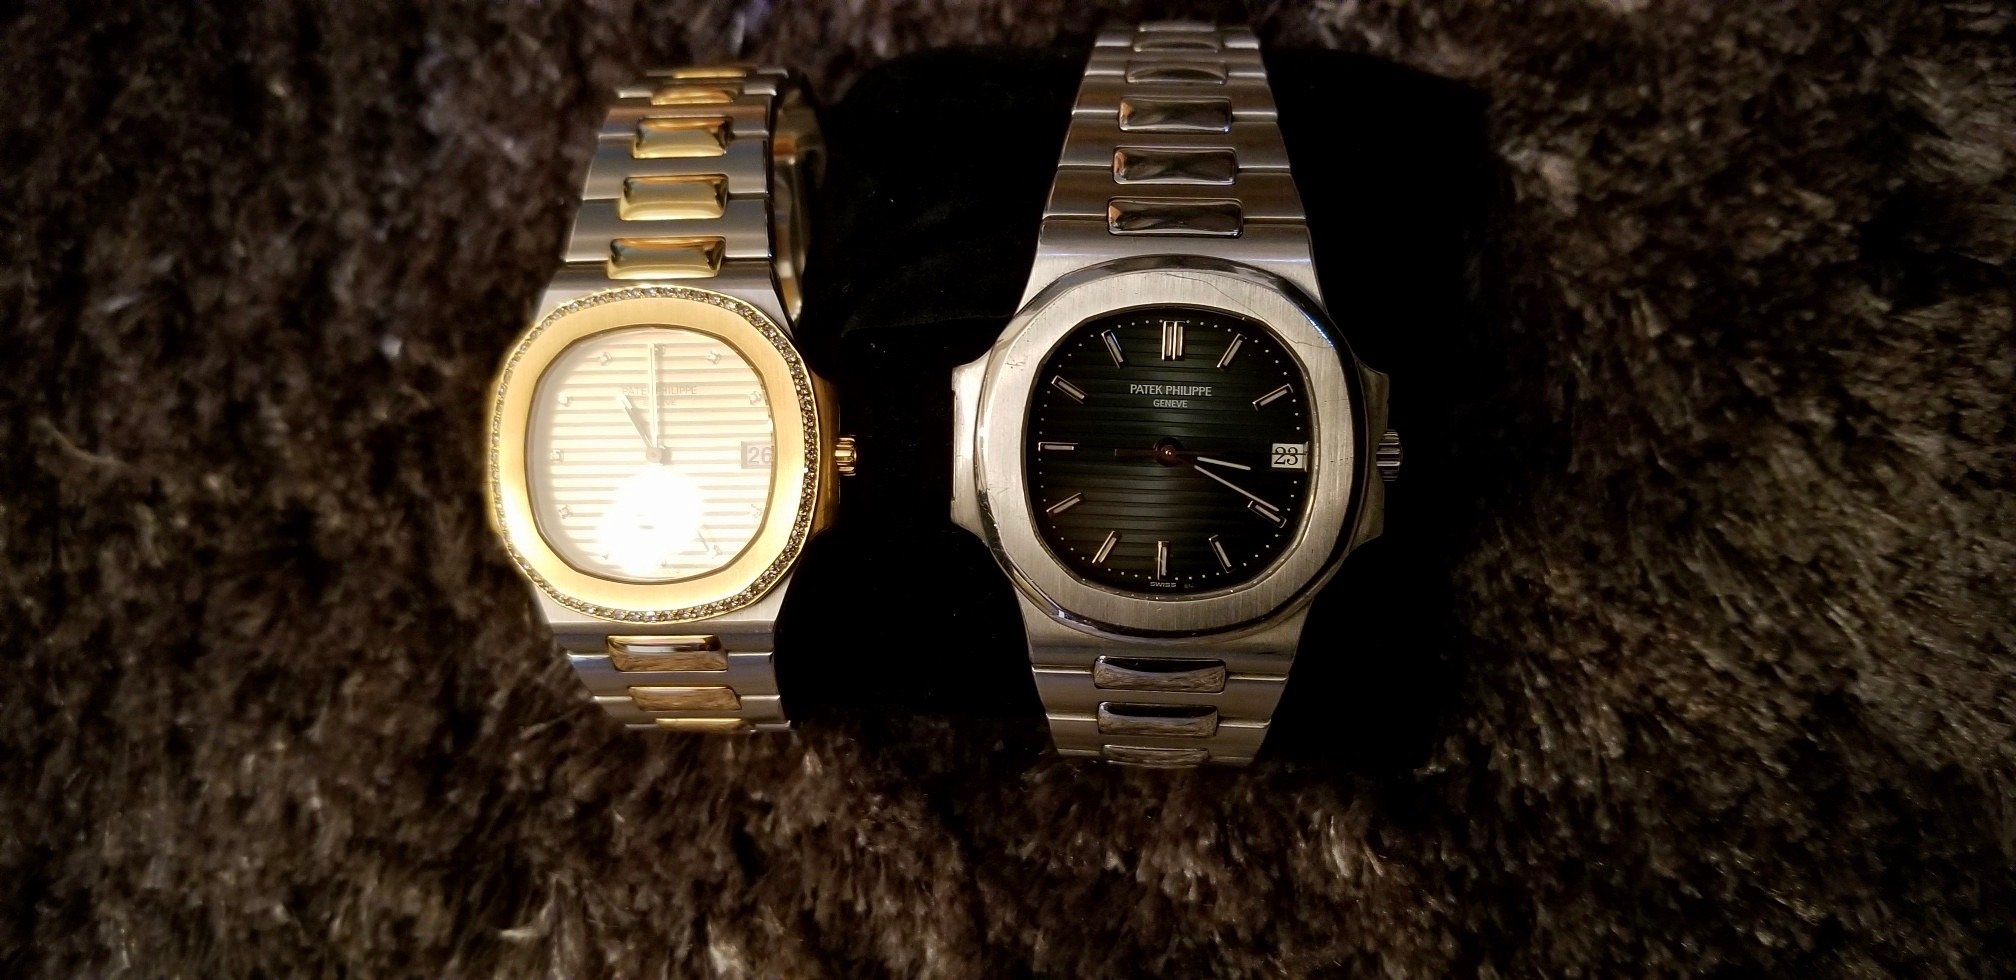 素敵なpair watch ❤︎_f0057849_16370100.jpg